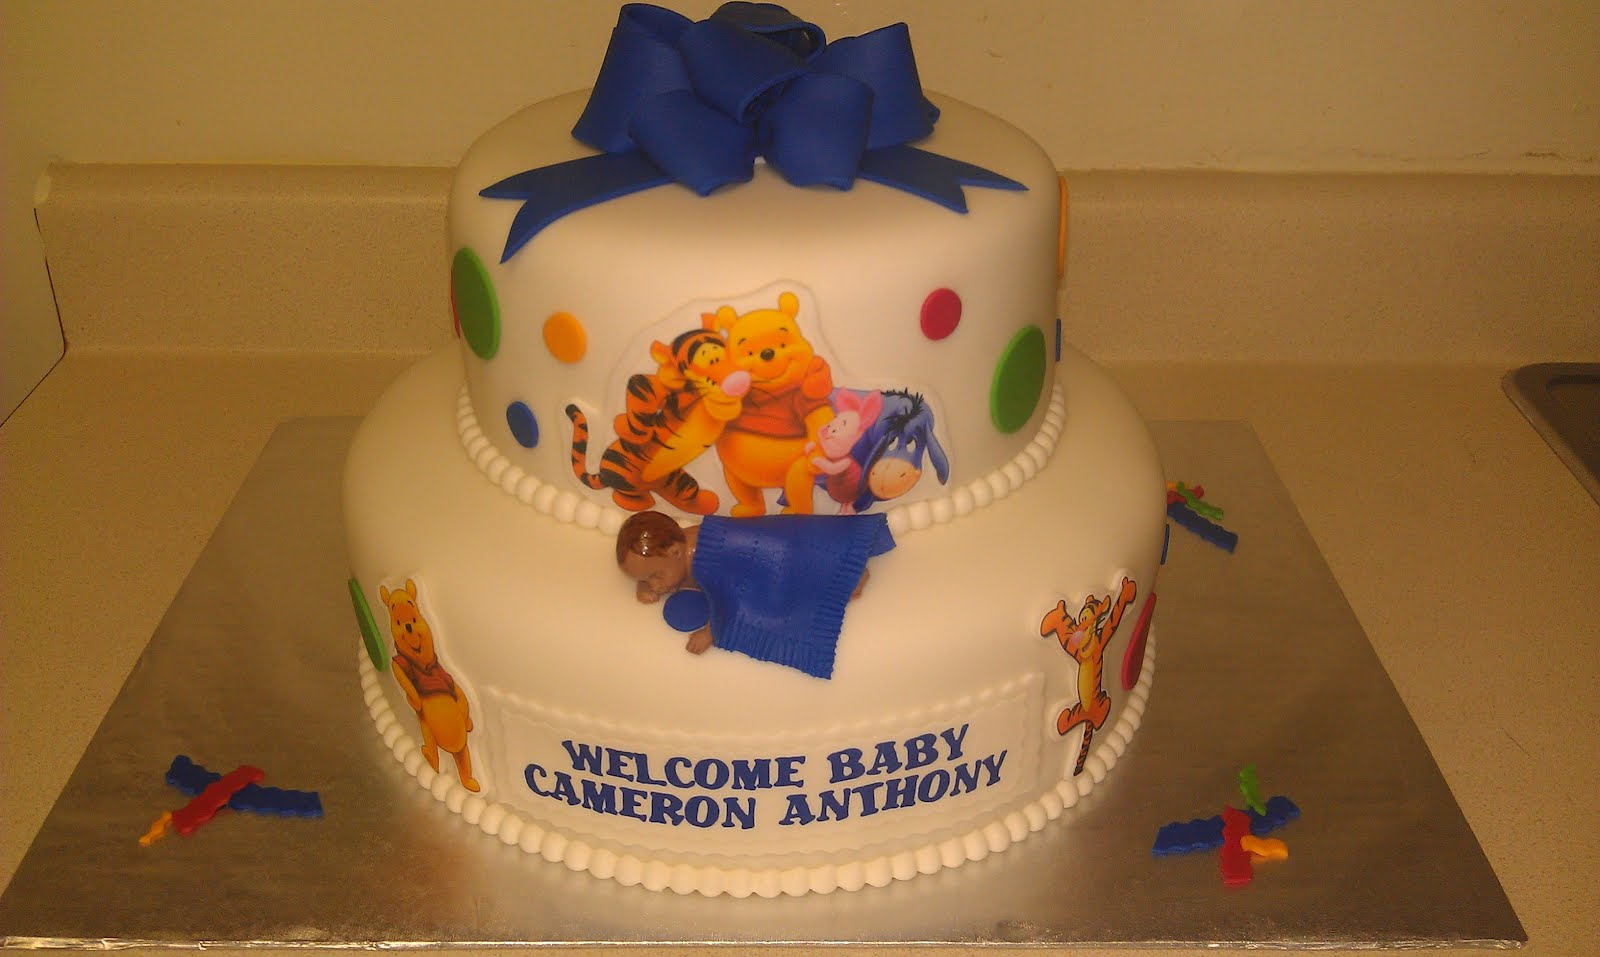 tlite cakes and planning winnie the pooh baby shower cake